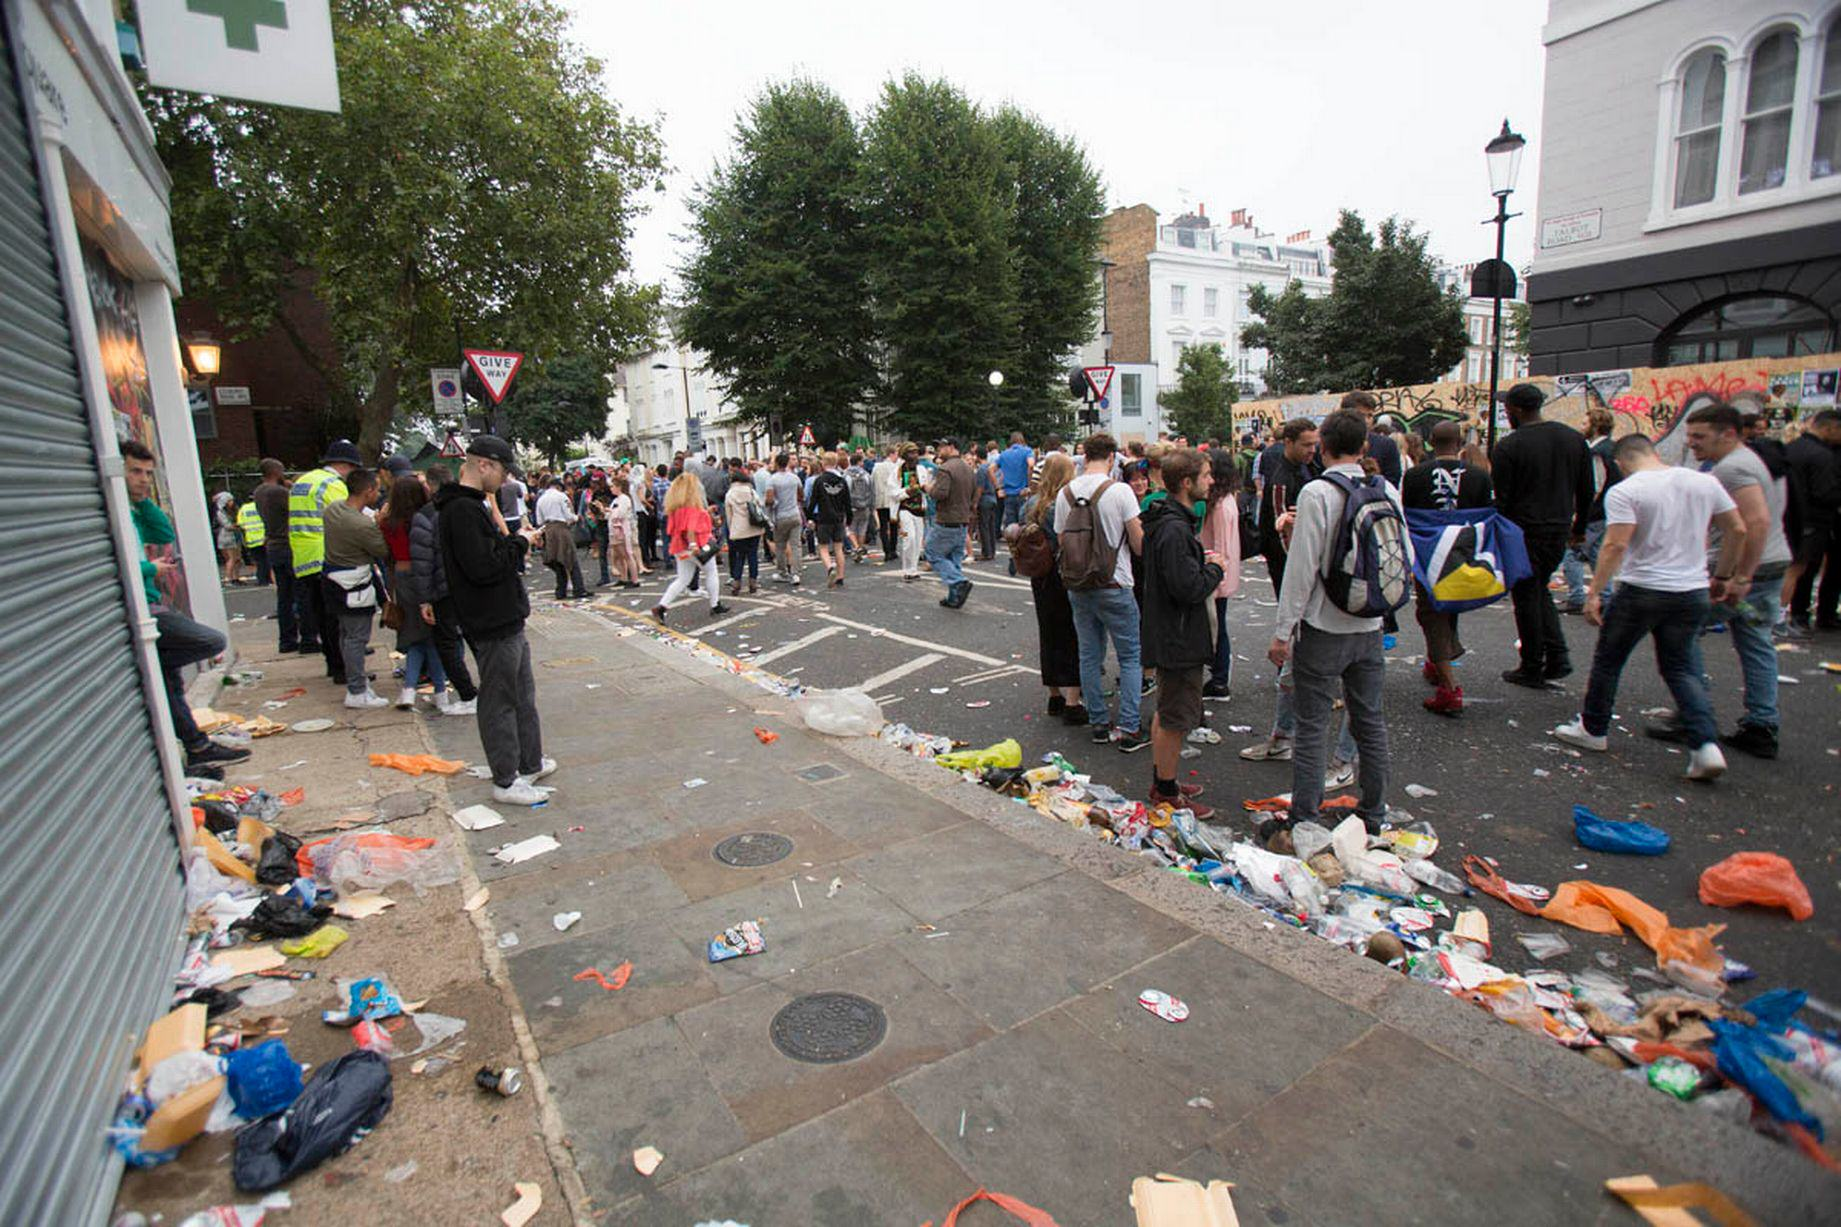 The Haul Of Weapons Seized By Police At This Years Notting Hill Carnival Is Pretty Insane UNILAD notting hill 47